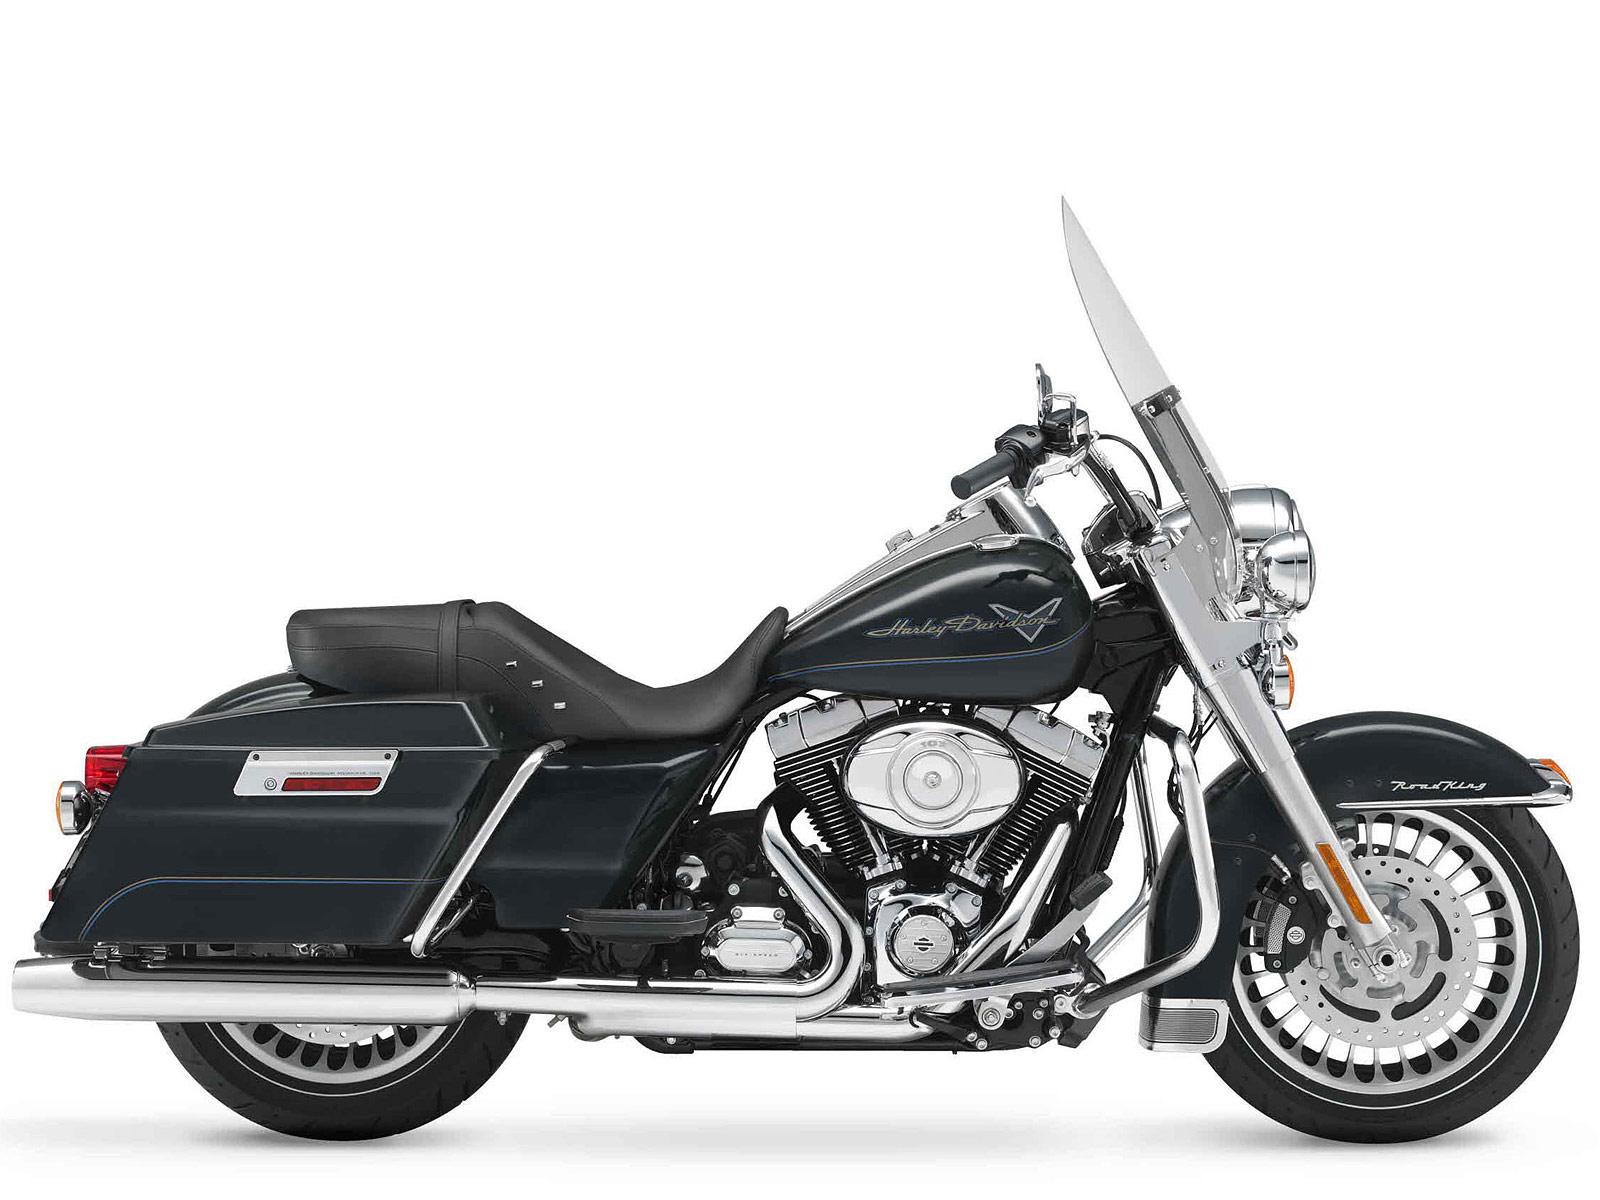 Harleydavidson Pictures 2012 FLHR Road King